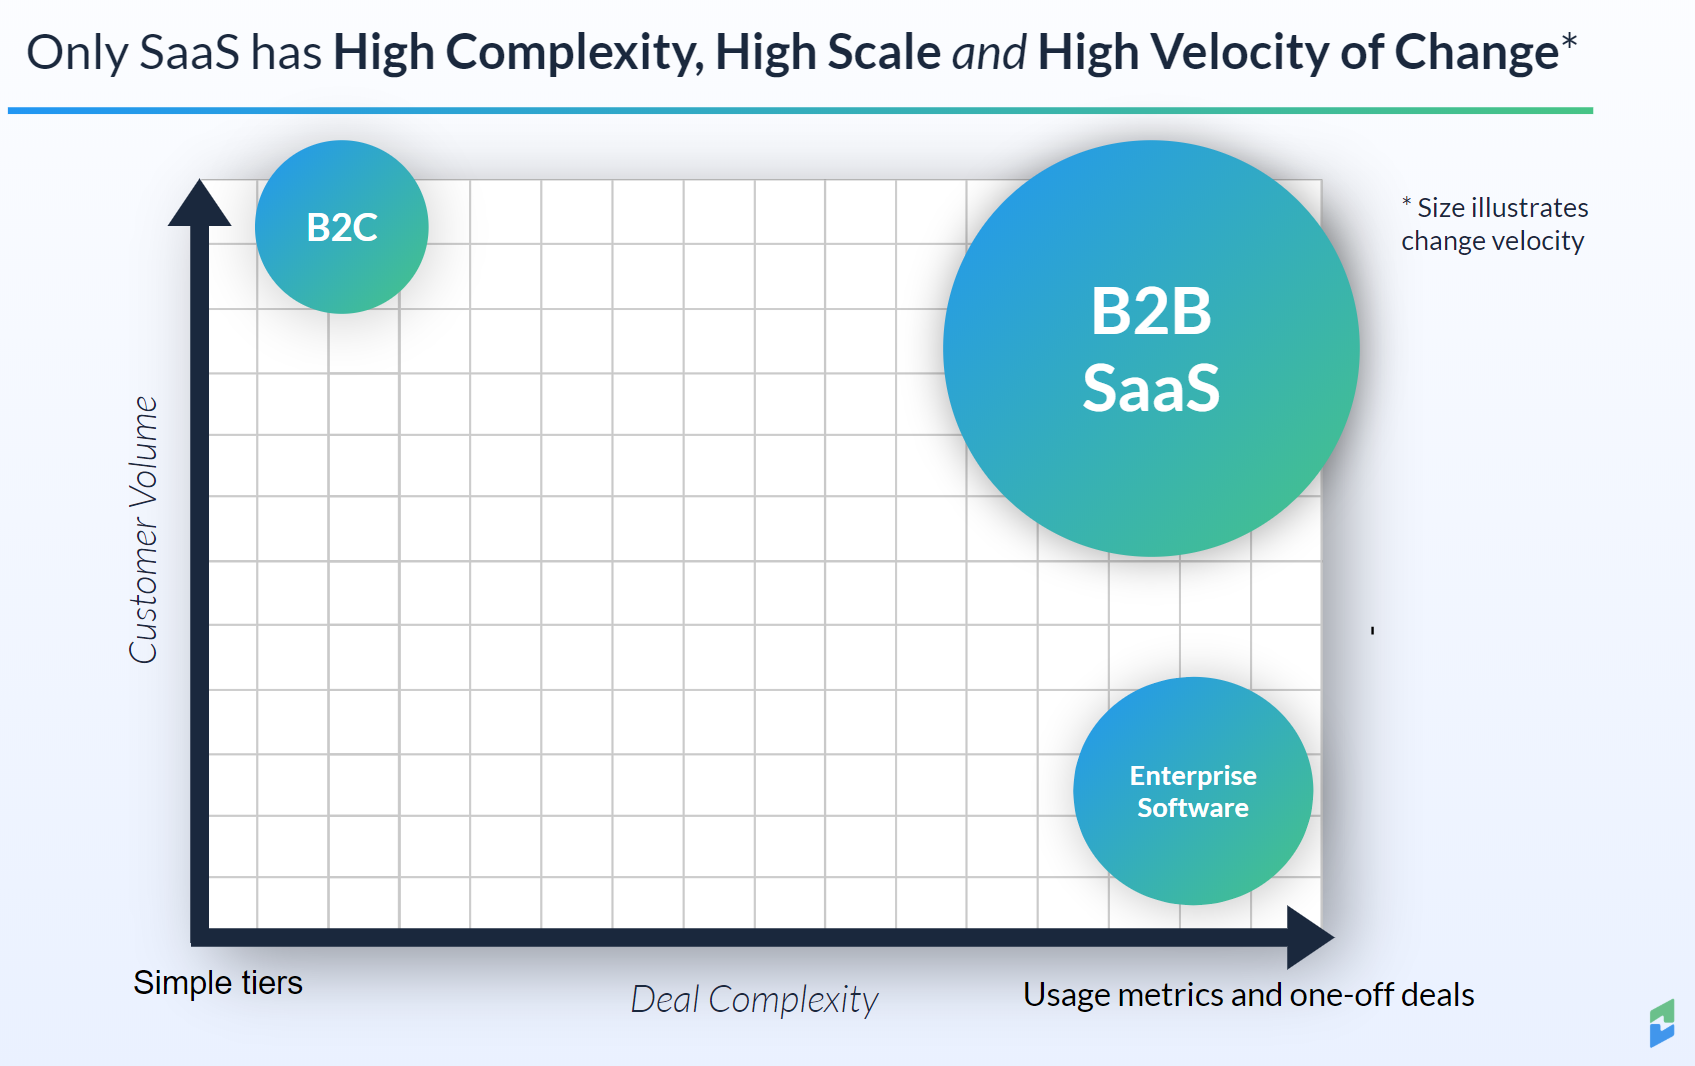 Graph comparing the complexity and customer volume of B2B SaaS, B2C SaaS and enterprise software